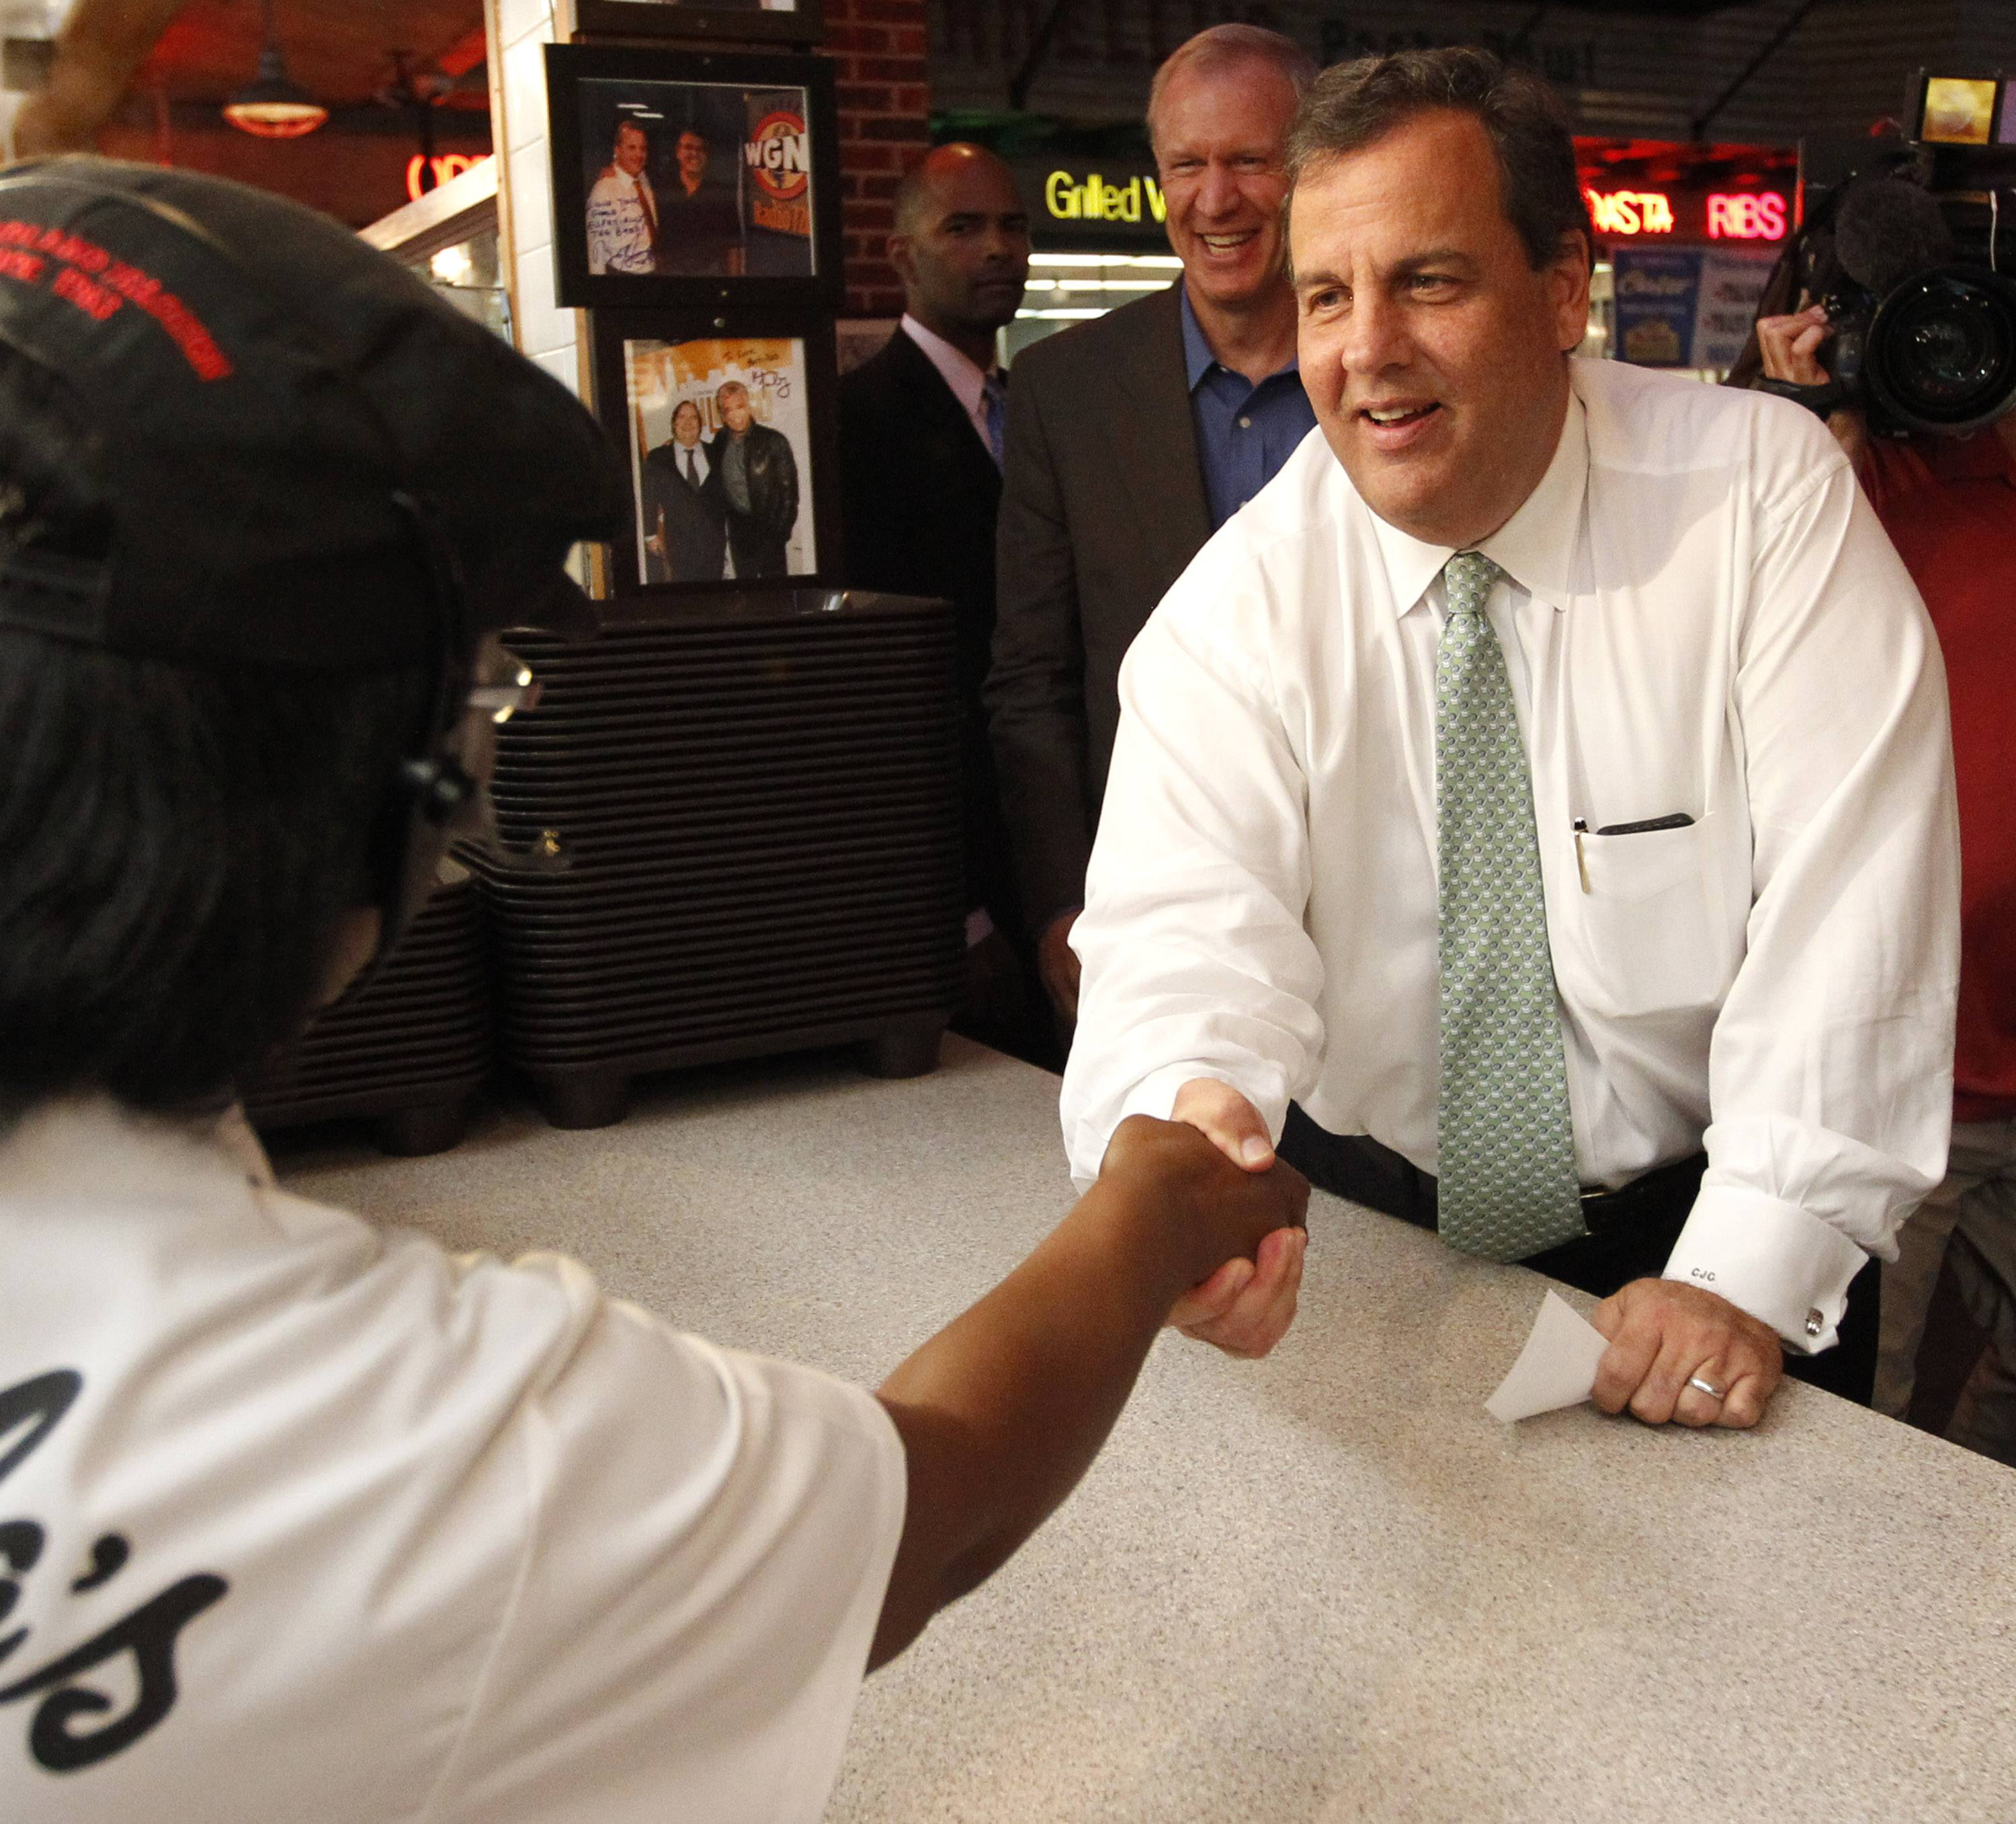 New Jersey Gov. Chris Christie, right, shakes hands at a Portillo's restaurant while Illinois Republican governor candidate Bruce Rauner watches during a campaign stop Friday in Chicago.